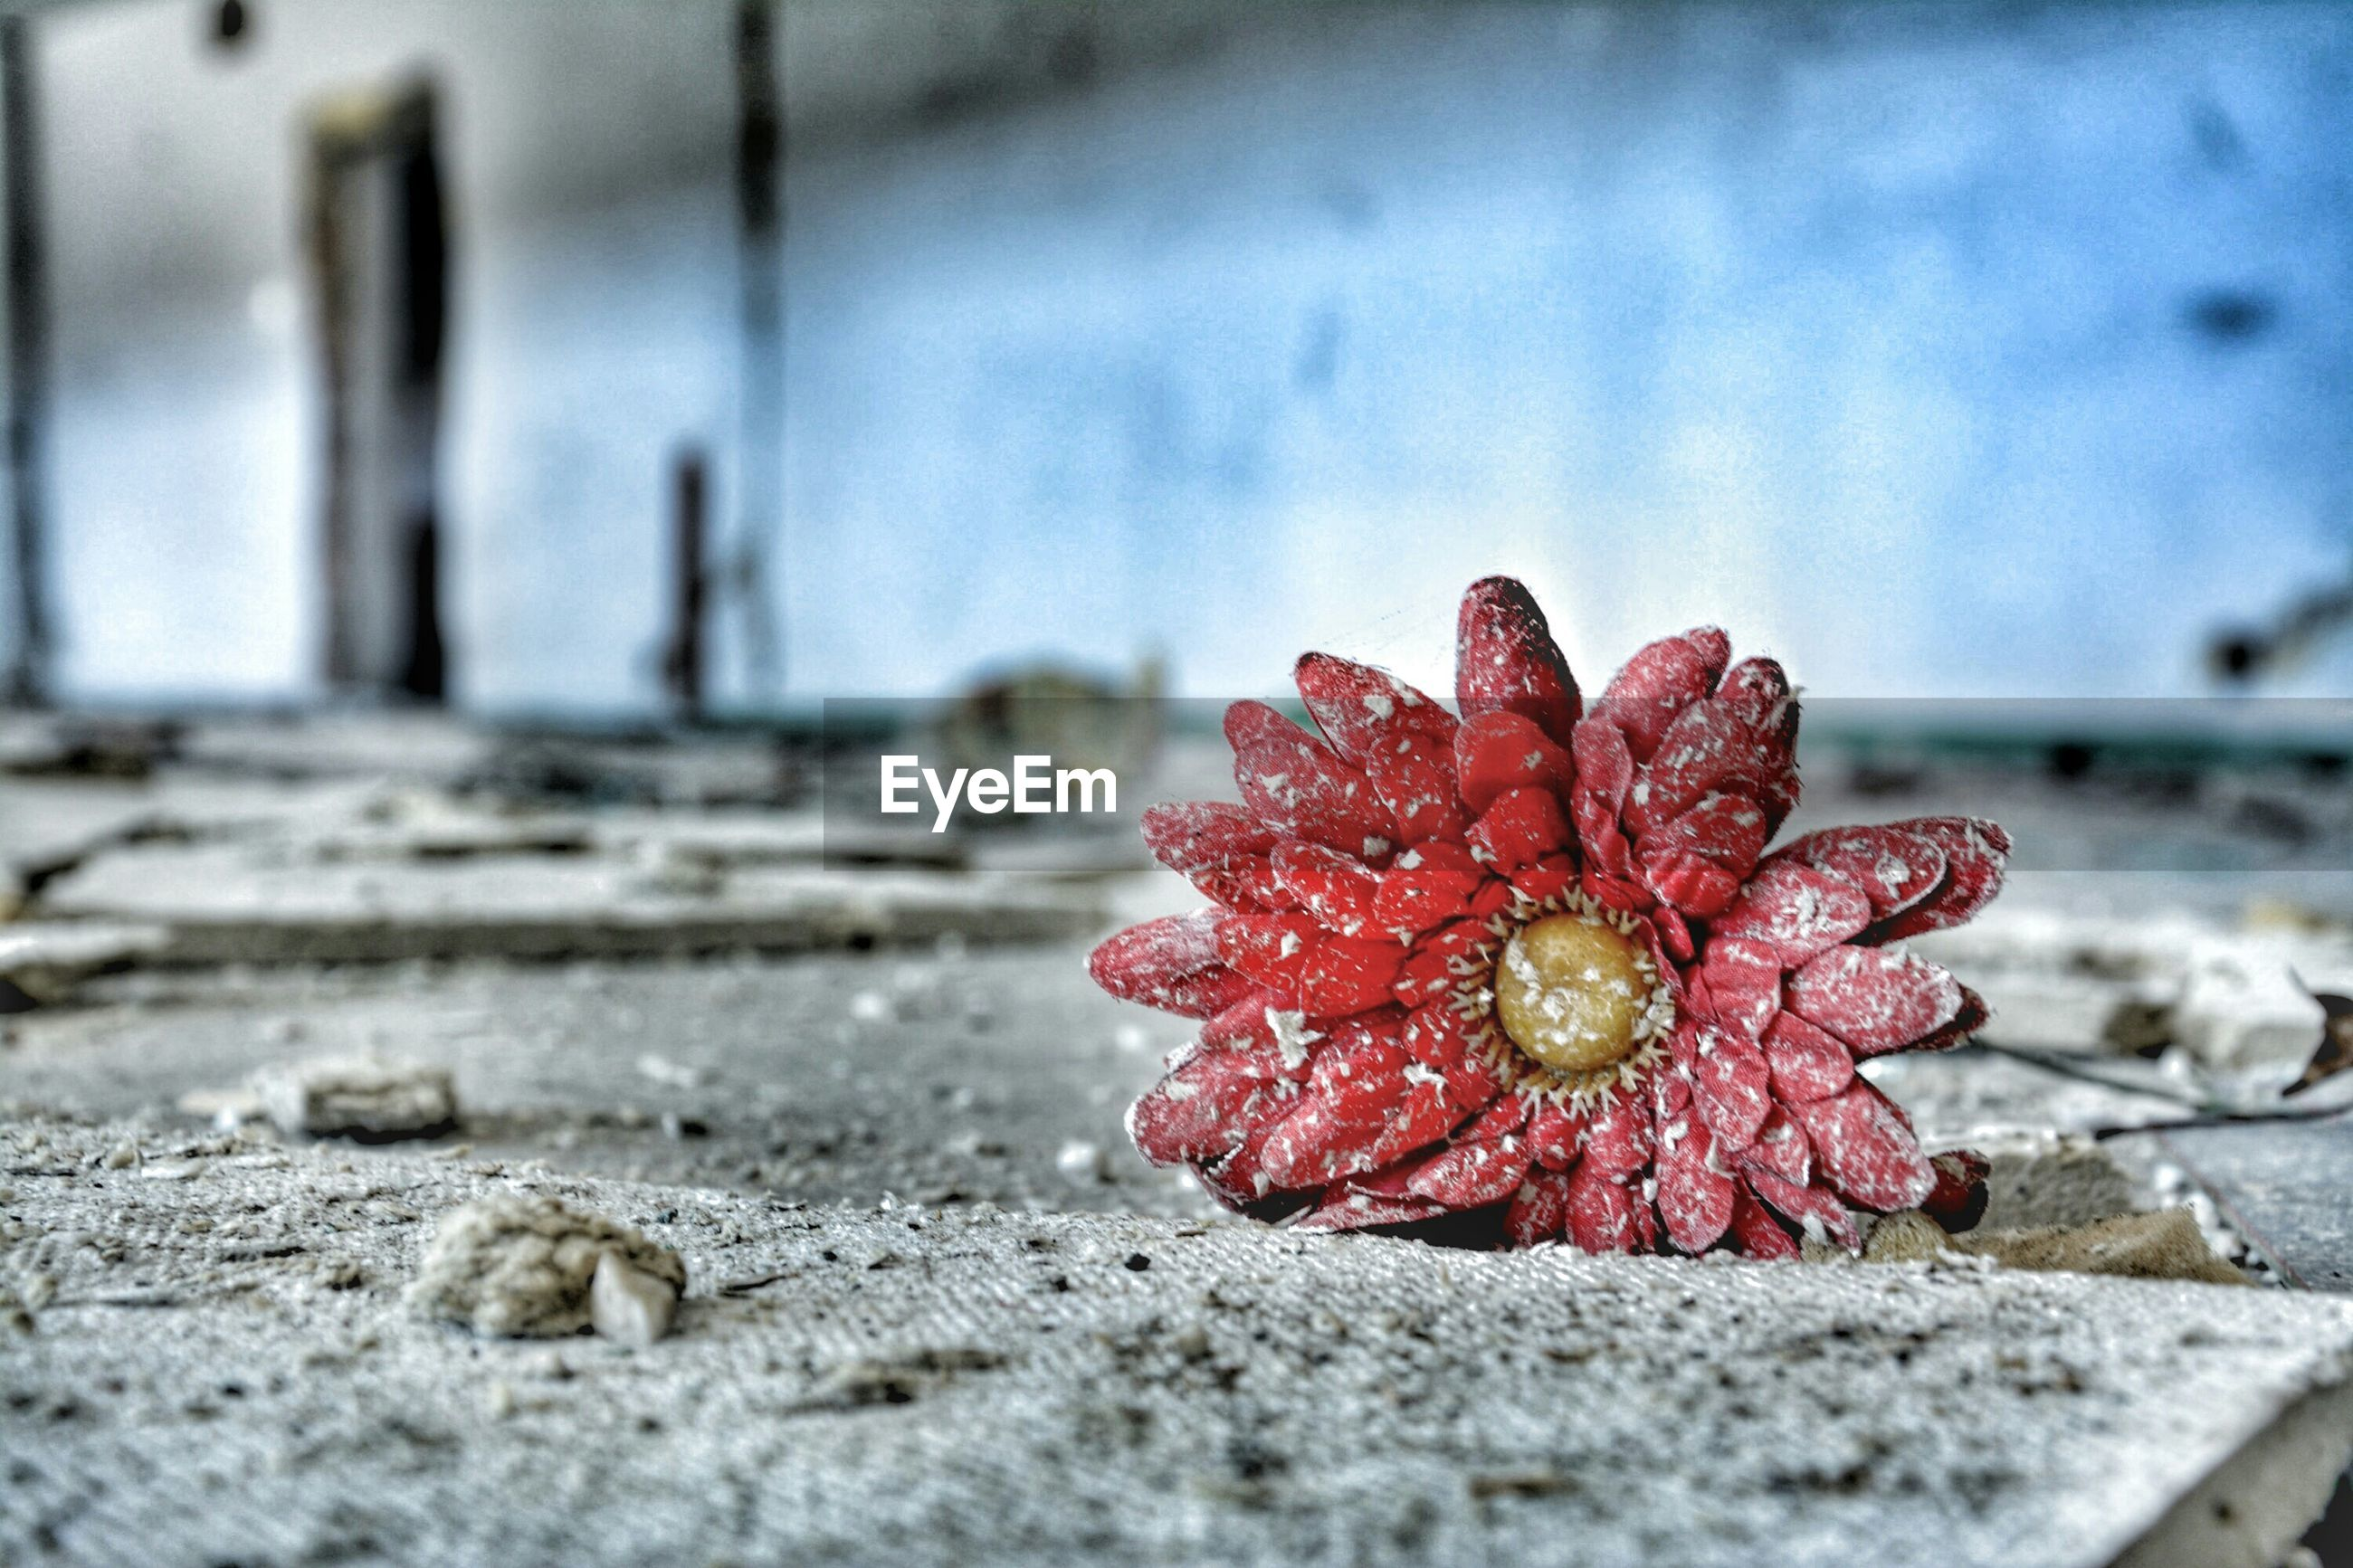 close-up, focus on foreground, selective focus, red, freshness, nature, surface level, flower, no people, day, beauty in nature, fragility, outdoors, growth, wet, tranquility, plant, sunlight, water, stone - object